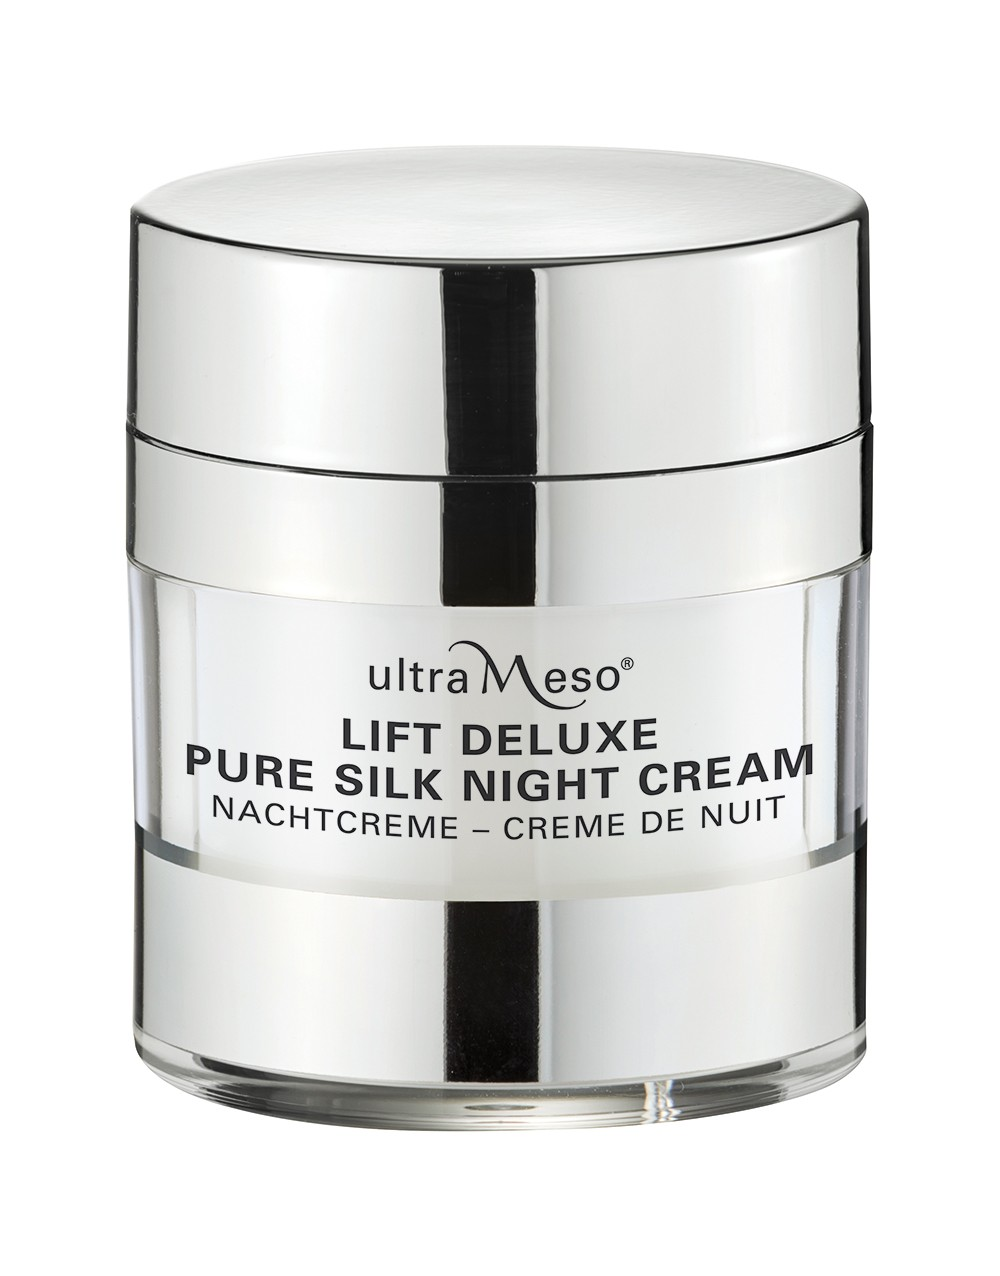 ultraMeso® LIFT DELUXE PURE SILK NIGHT CREAM I 50ml